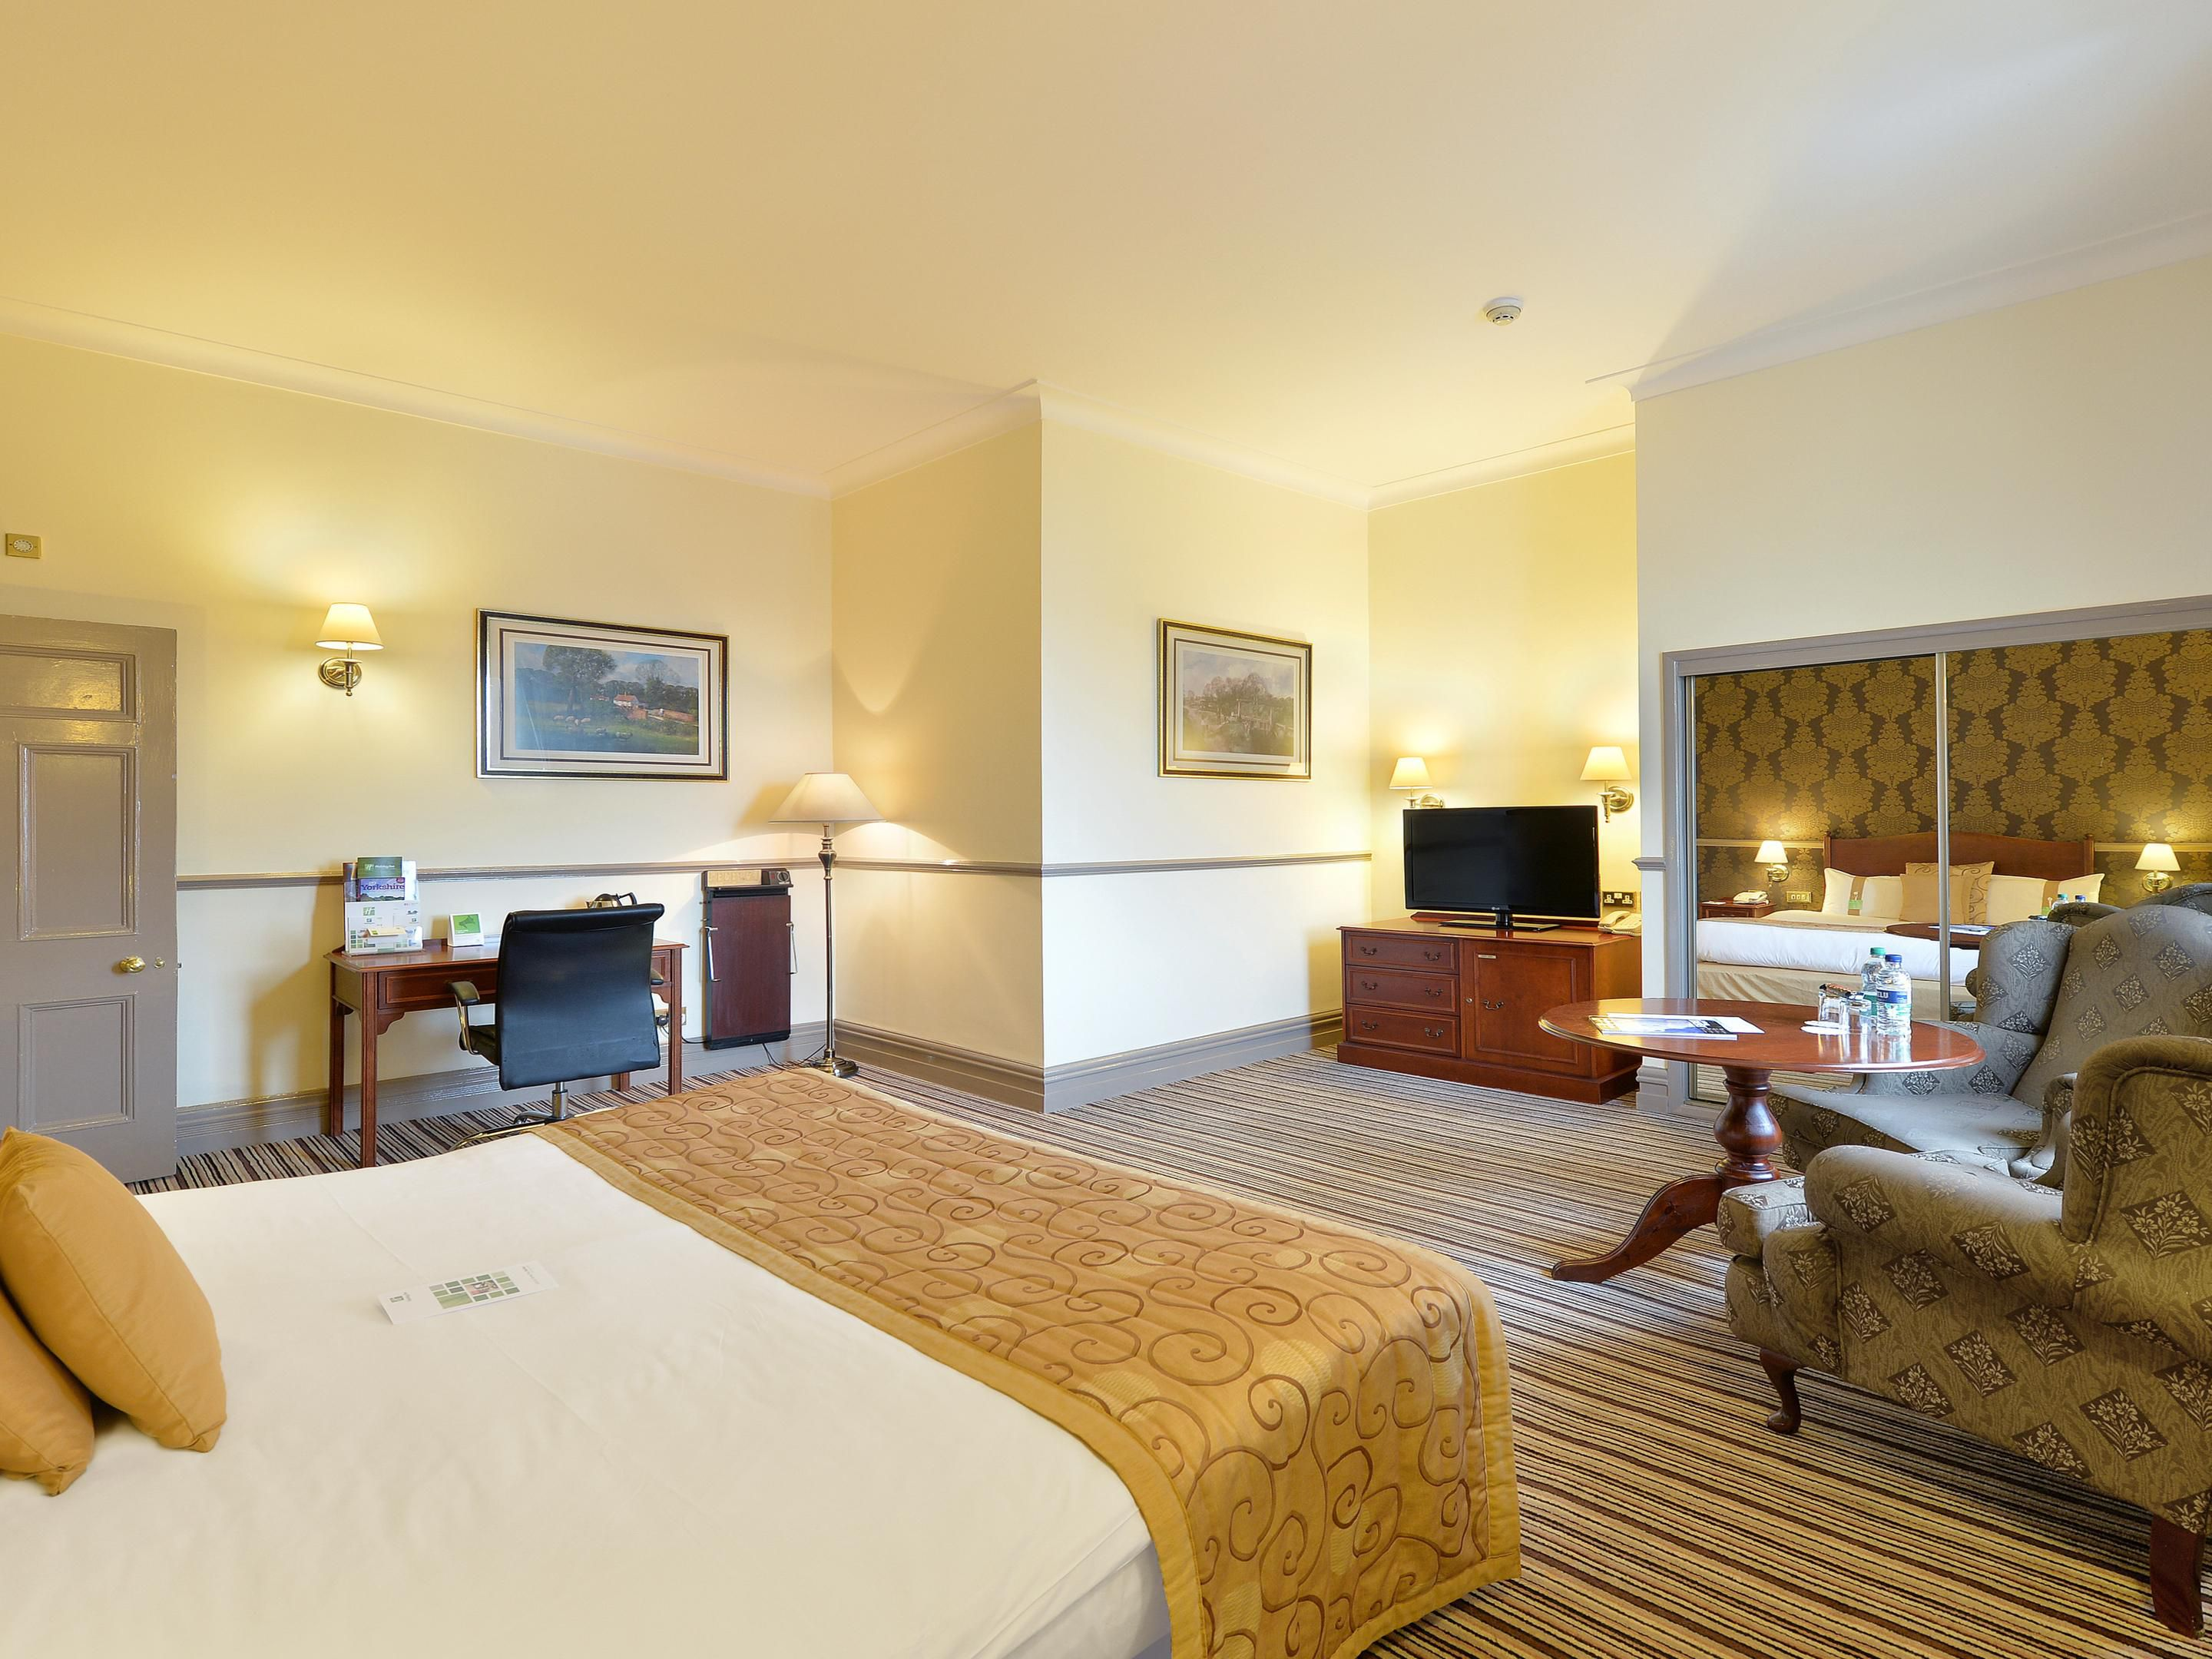 Upgrade to one of our Executive bedrooms with Spa baths